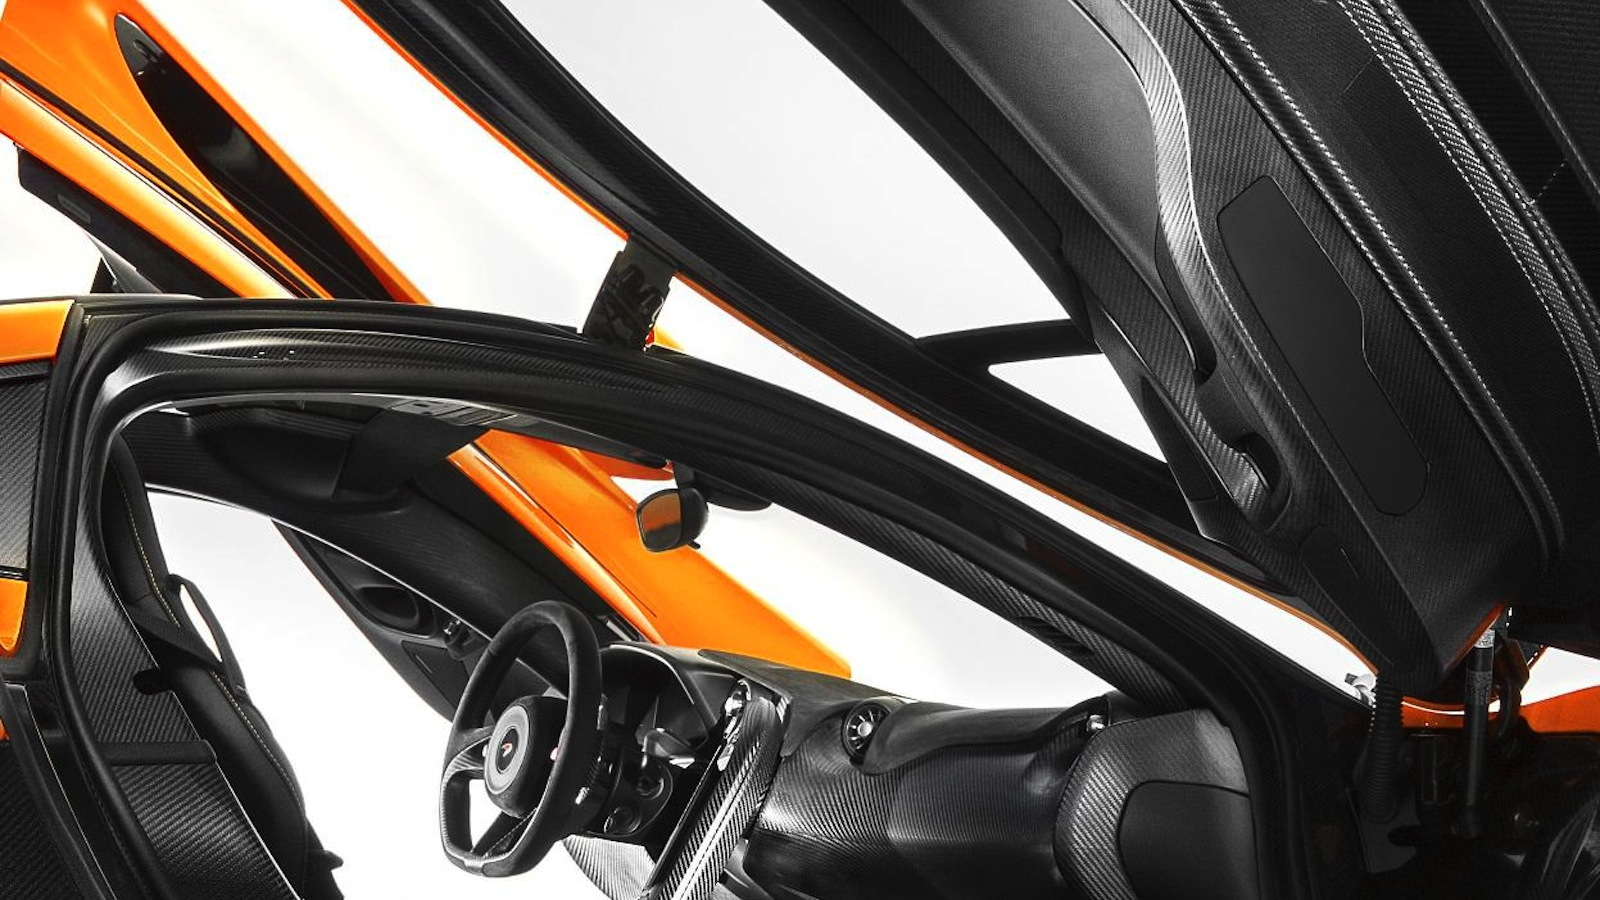 The McLaren P1's interior - image: McLaren